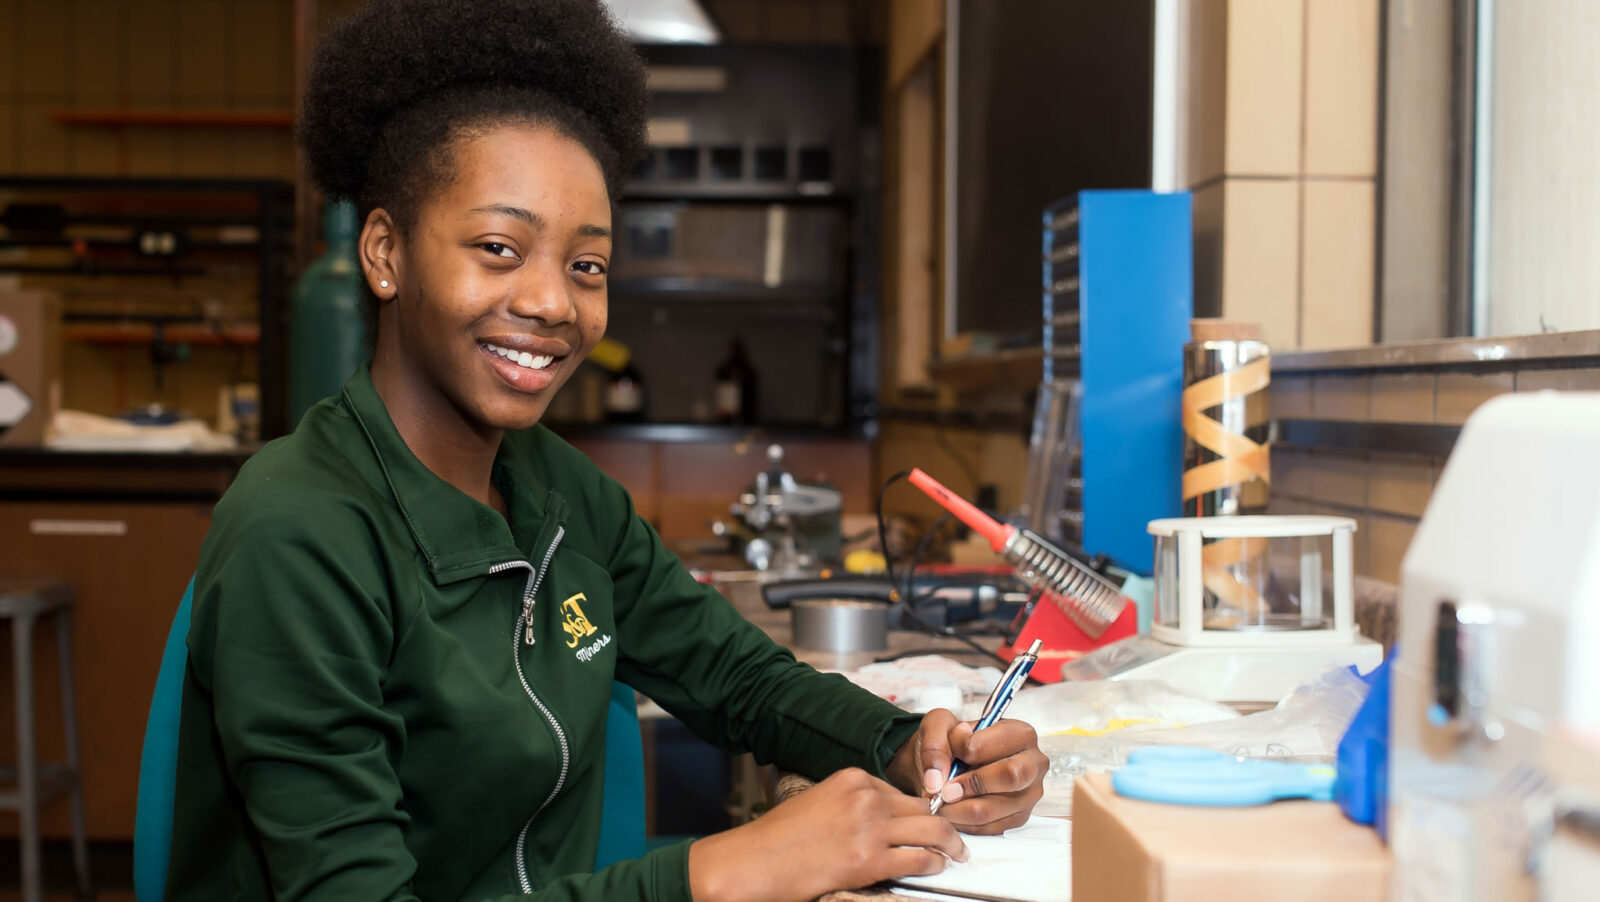 Missouri S&T chemistry major working in lab